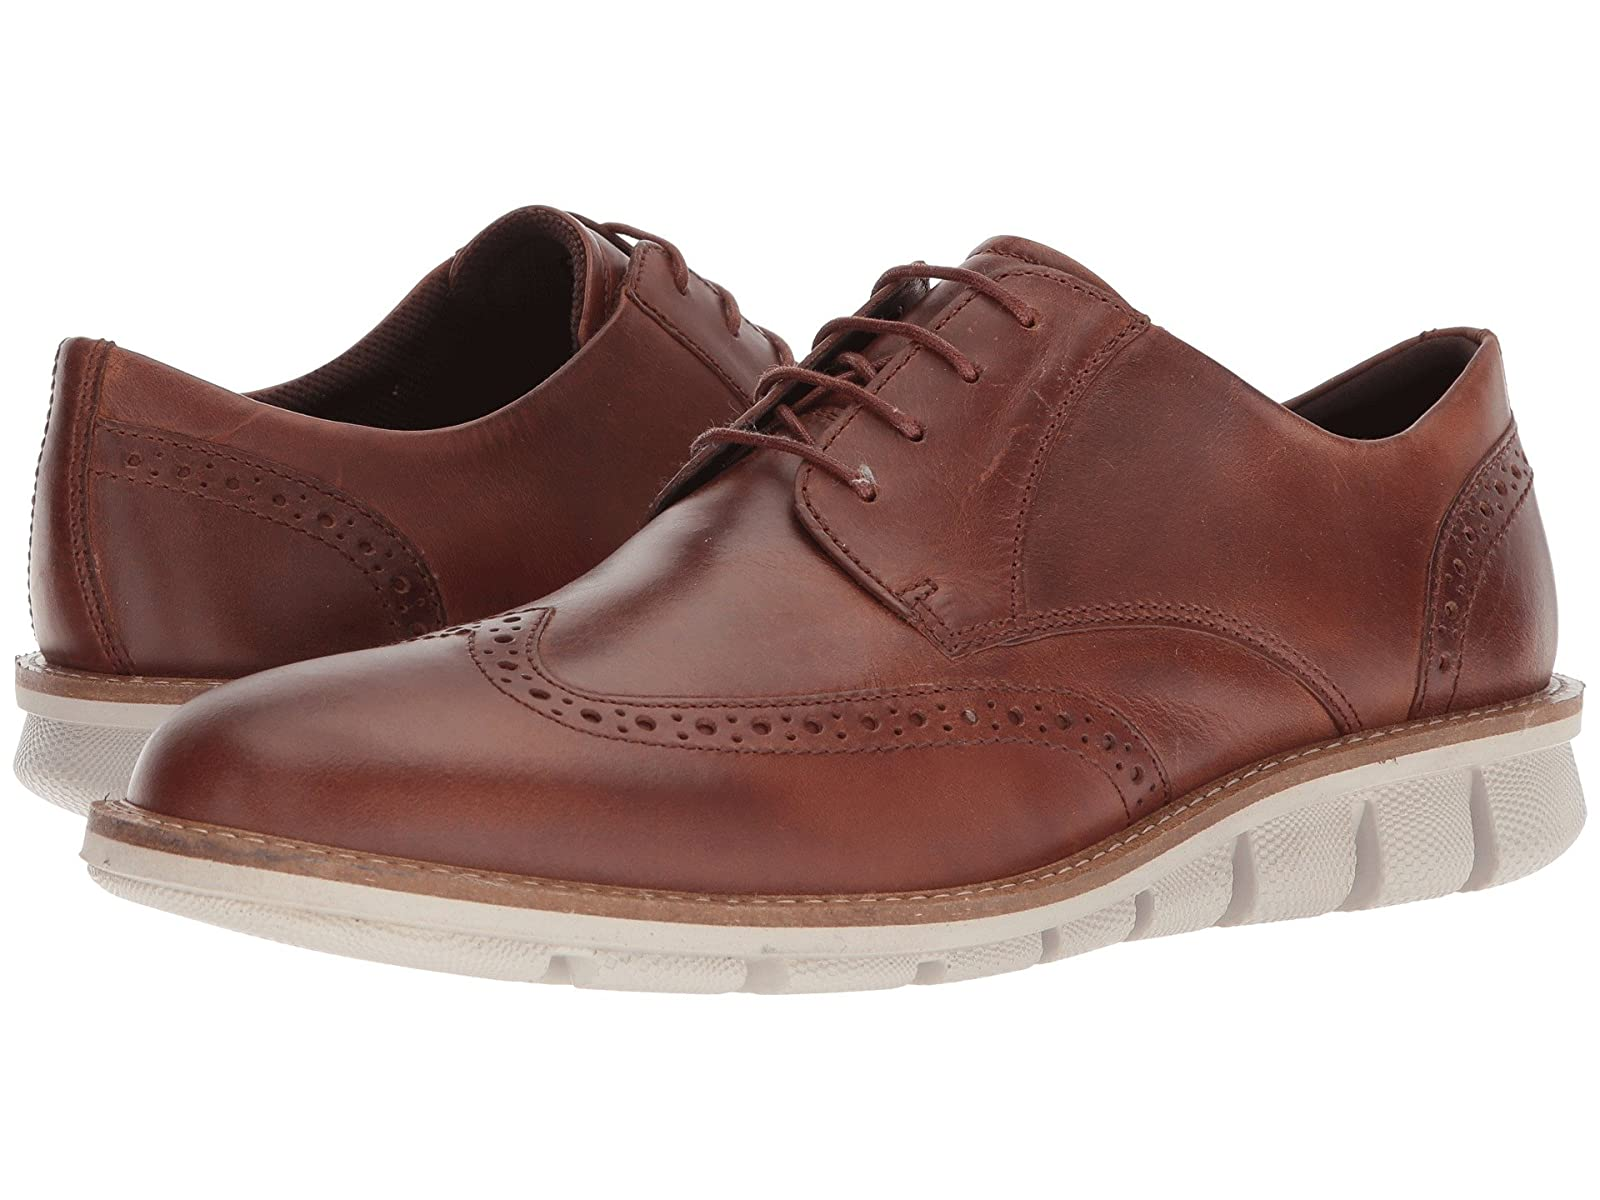 ECCO Jeremy Wingtip Hybrid TieCheap and distinctive eye-catching shoes